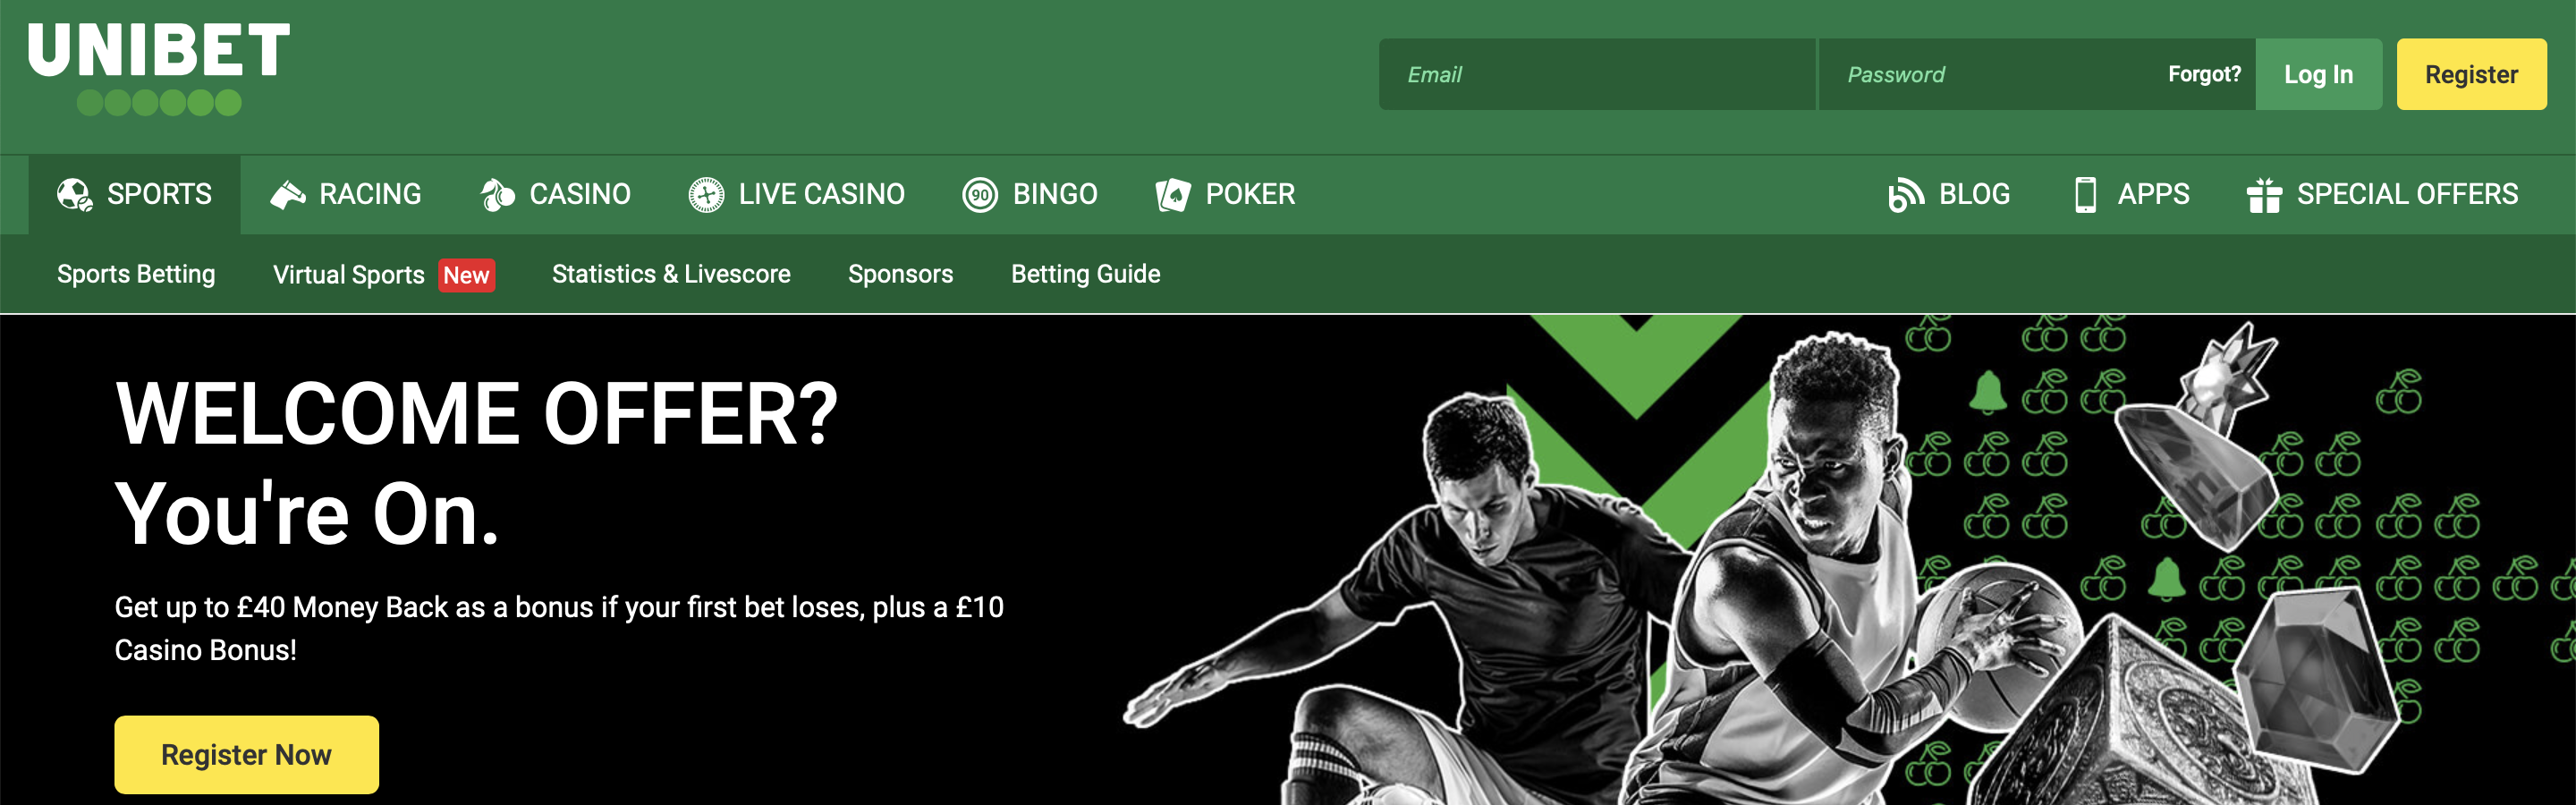 UniBet UK Betting Site